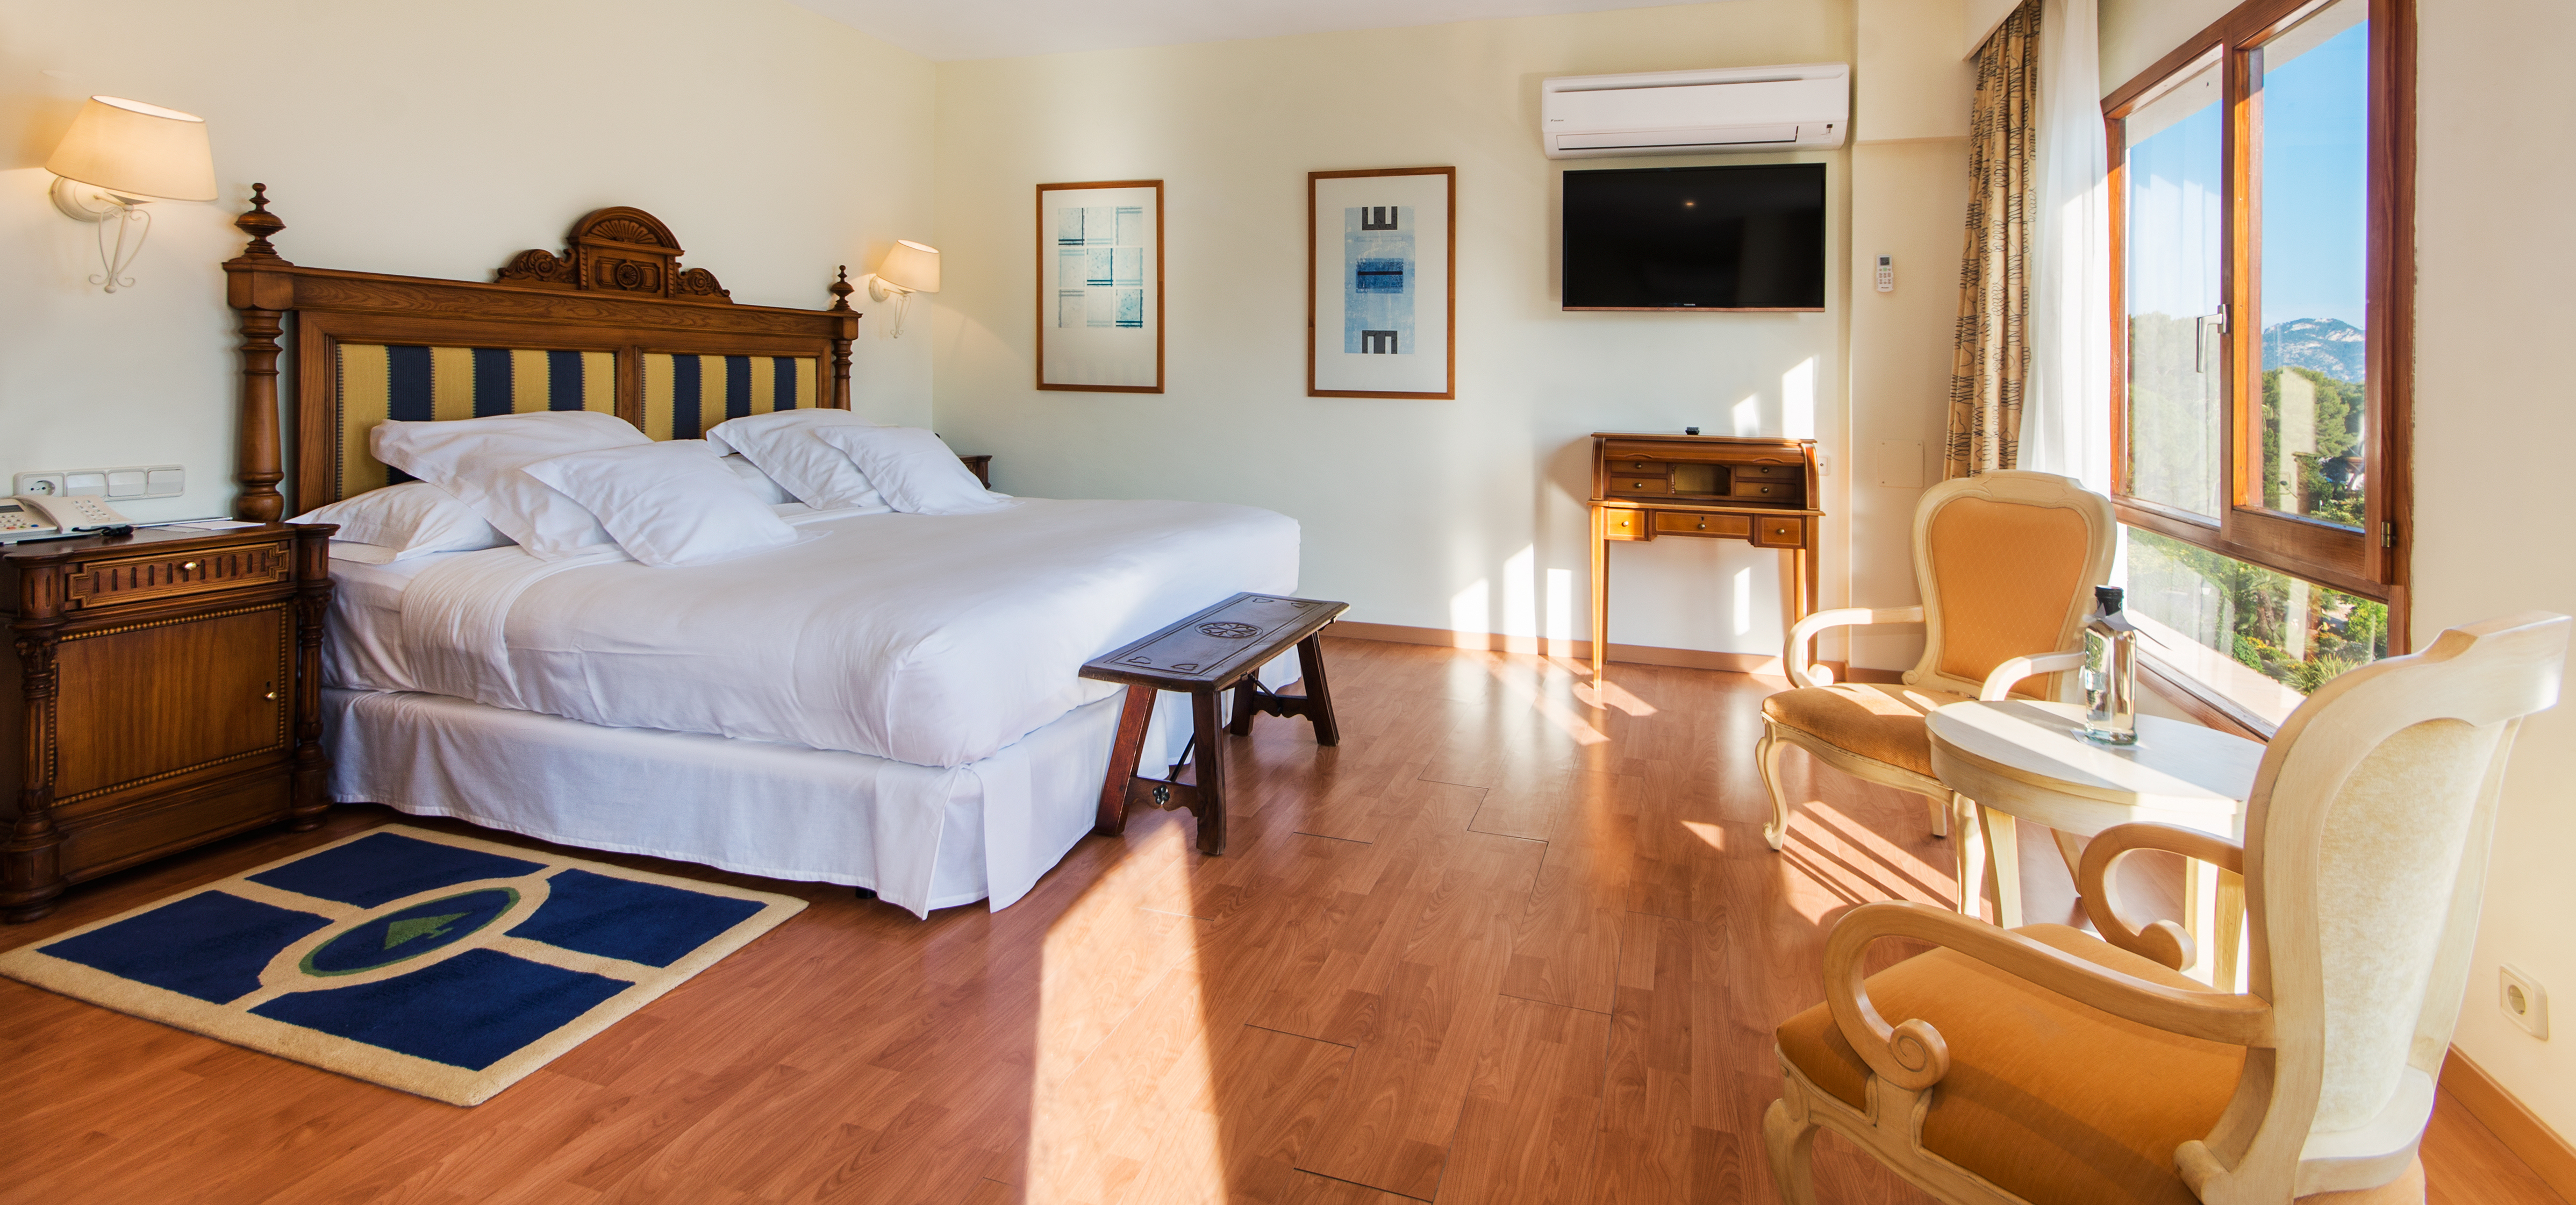 classic-bedroom-formentor-hotel